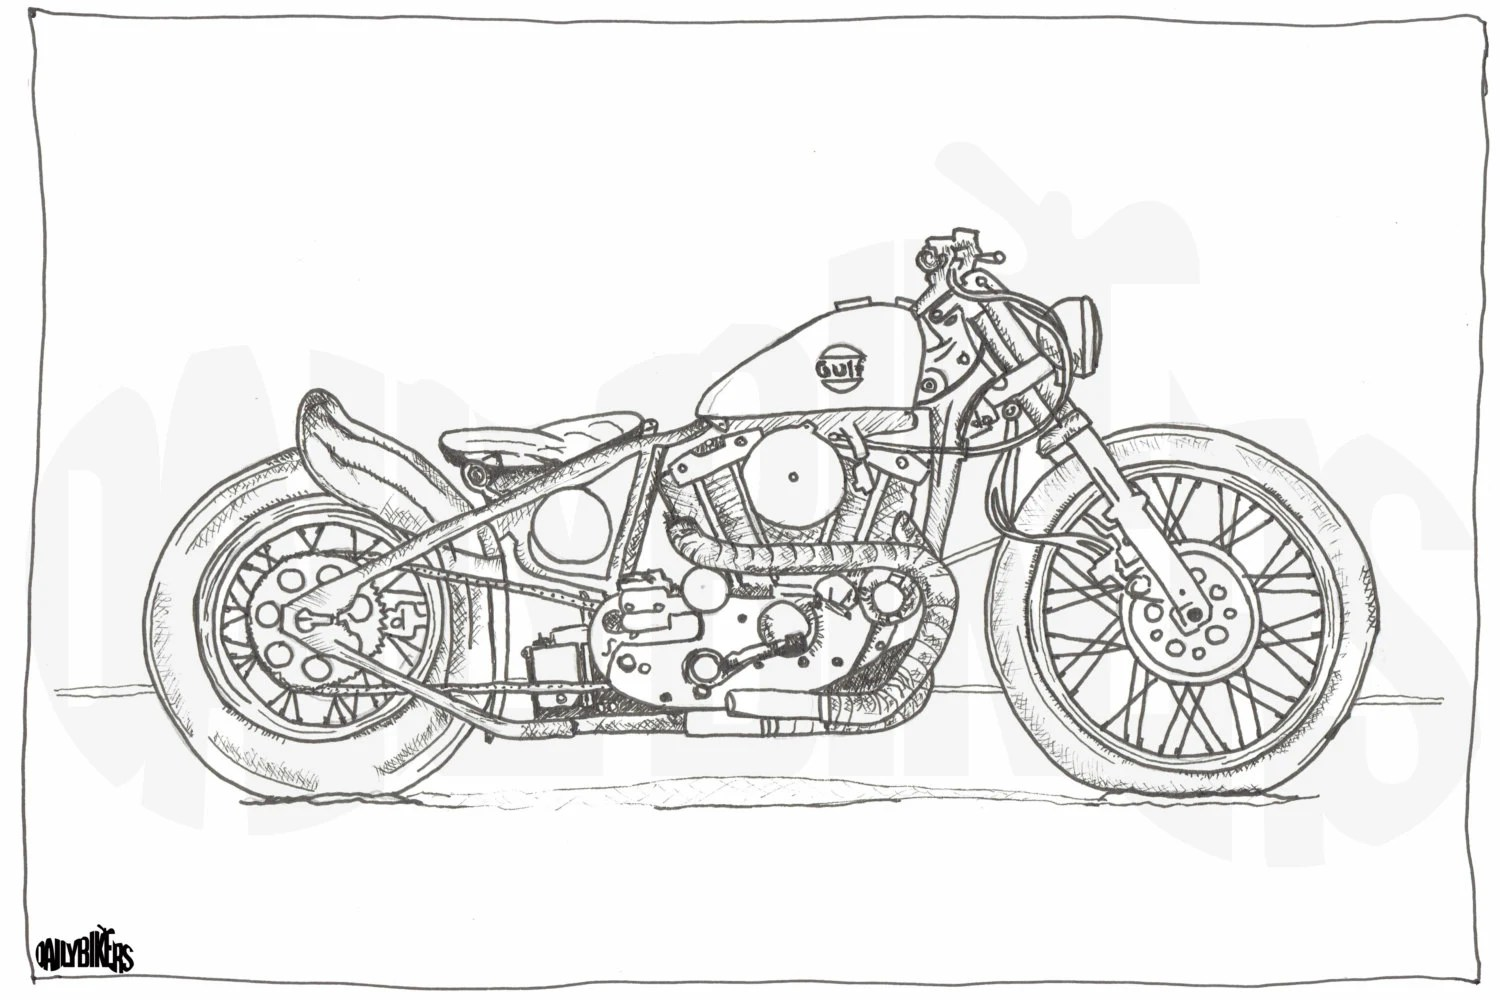 Adult Colouring Page Motorcycle Illustration by DailyBikers